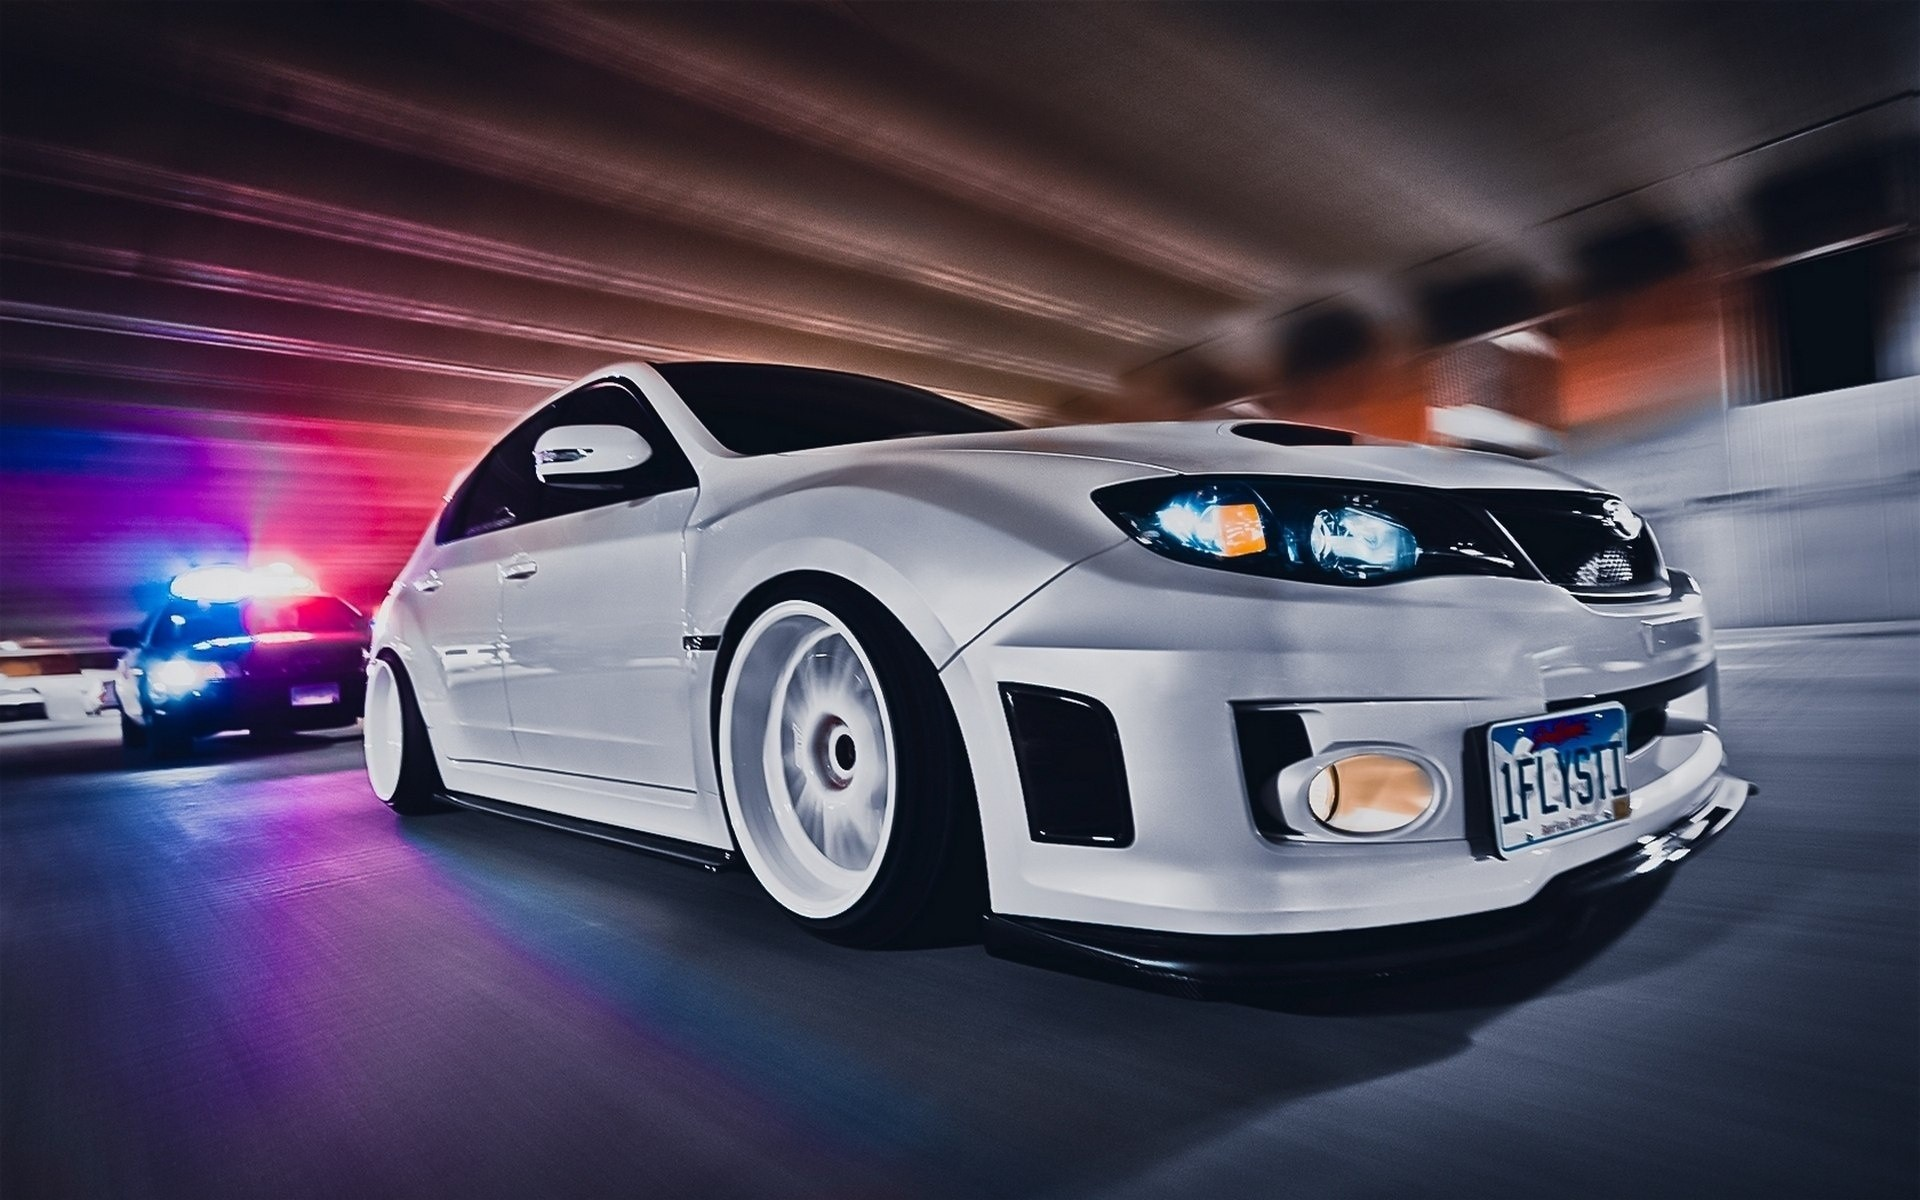 subaru impreza wrx sti wallpaper iphone